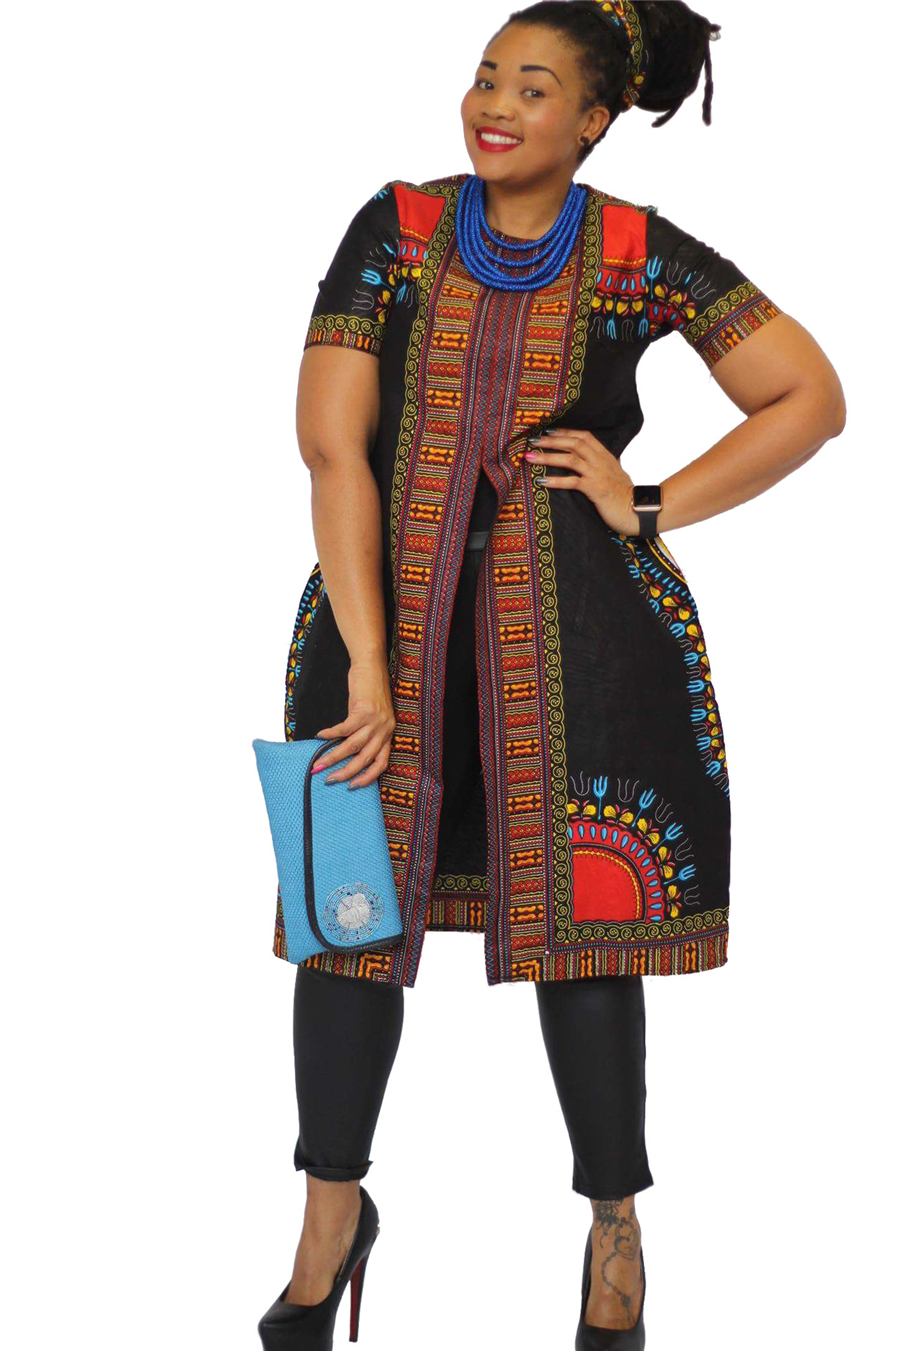 Buy low price, high quality african dresses for women with worldwide shipping on hereaupy06.gq